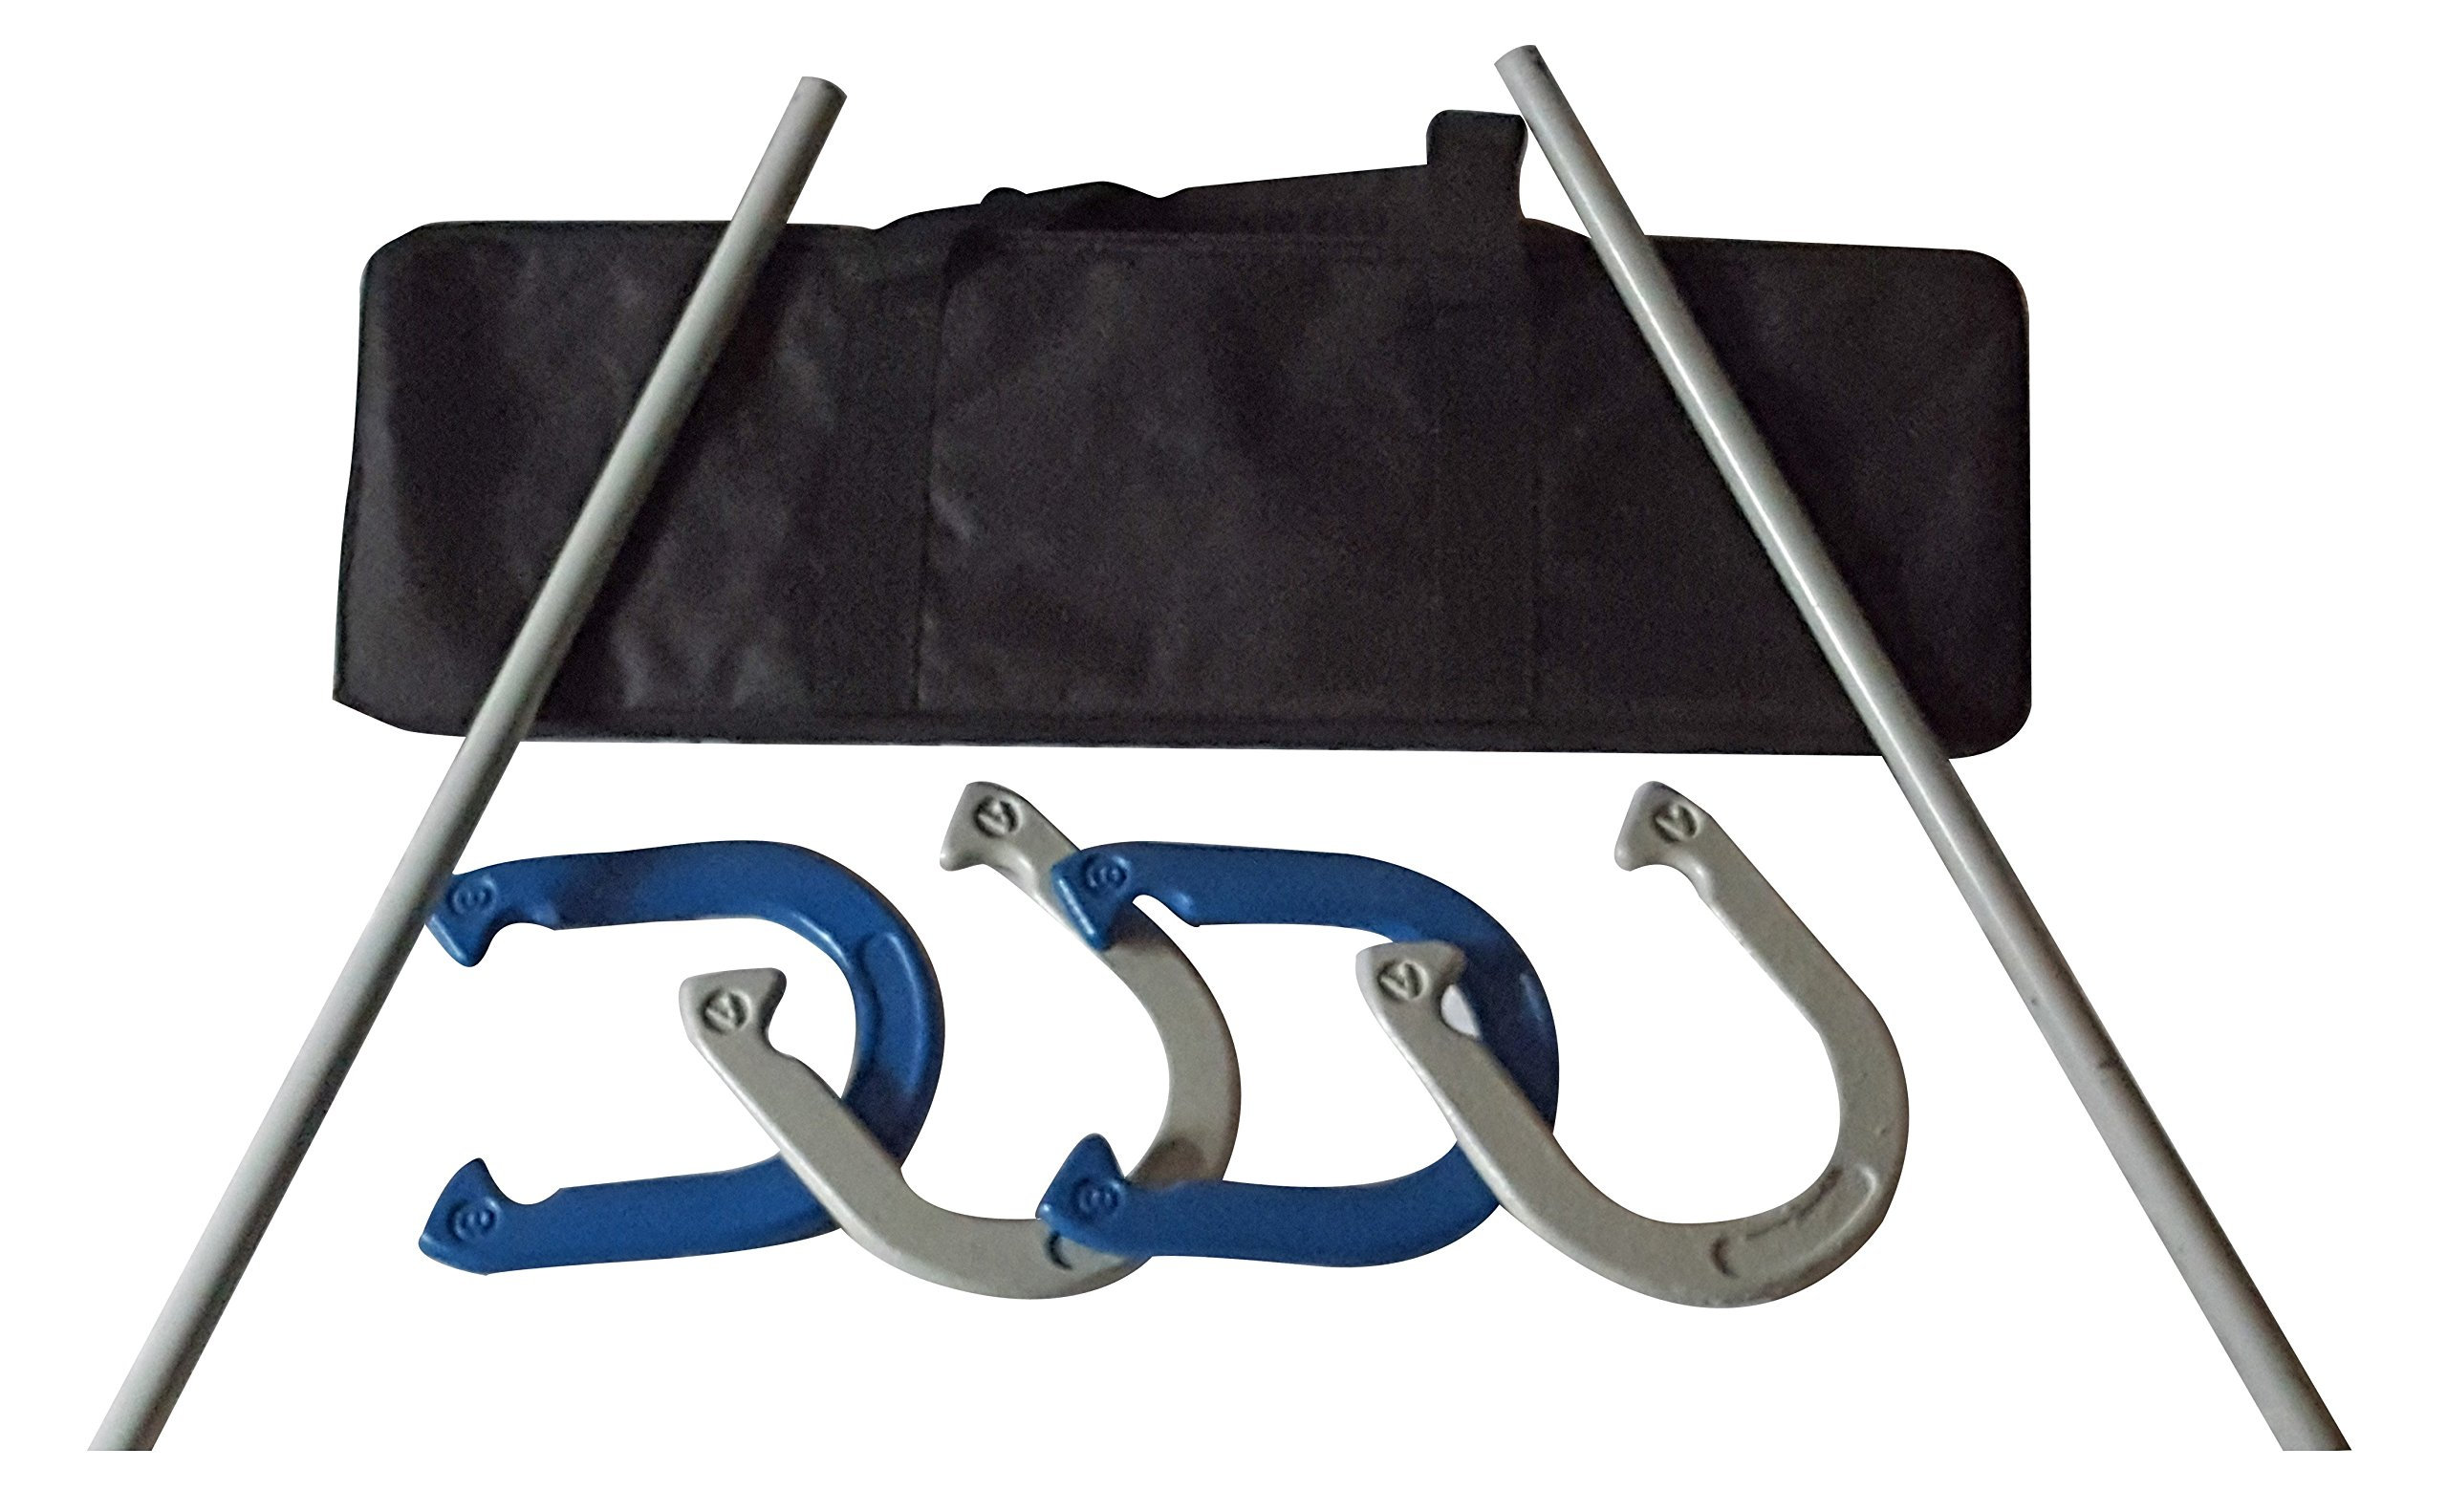 Driveway Games Metal Horseshoe Set. Professional Steel Throwing Horseshoes, Stakes & Carrying Case. Outdoor Pitching Toss Game